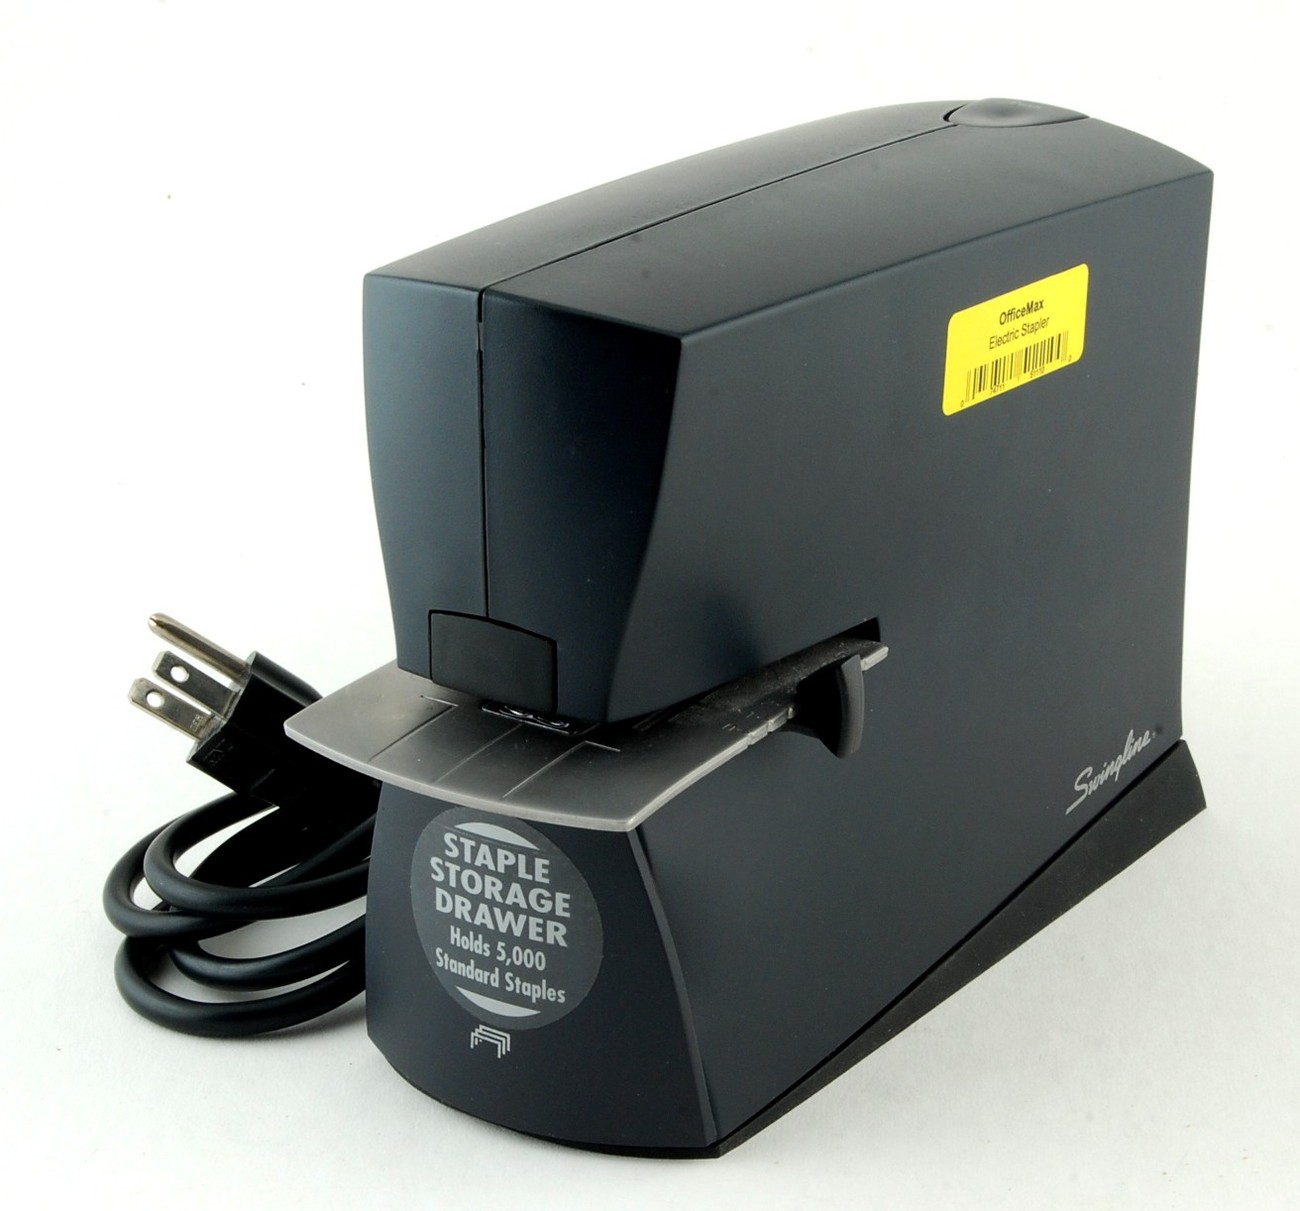 Swingline Electric Stapler Model 51110 Working Excellent. Help Desk Software Australia. Kids Bed With Desk. Classroom Desk Arrangement. Patio Dining Tables. Computer Keyboard Trays Under Desk. Small Computer Armoire Desk. Winners Only Inc Roll Top Desk. Old Tables